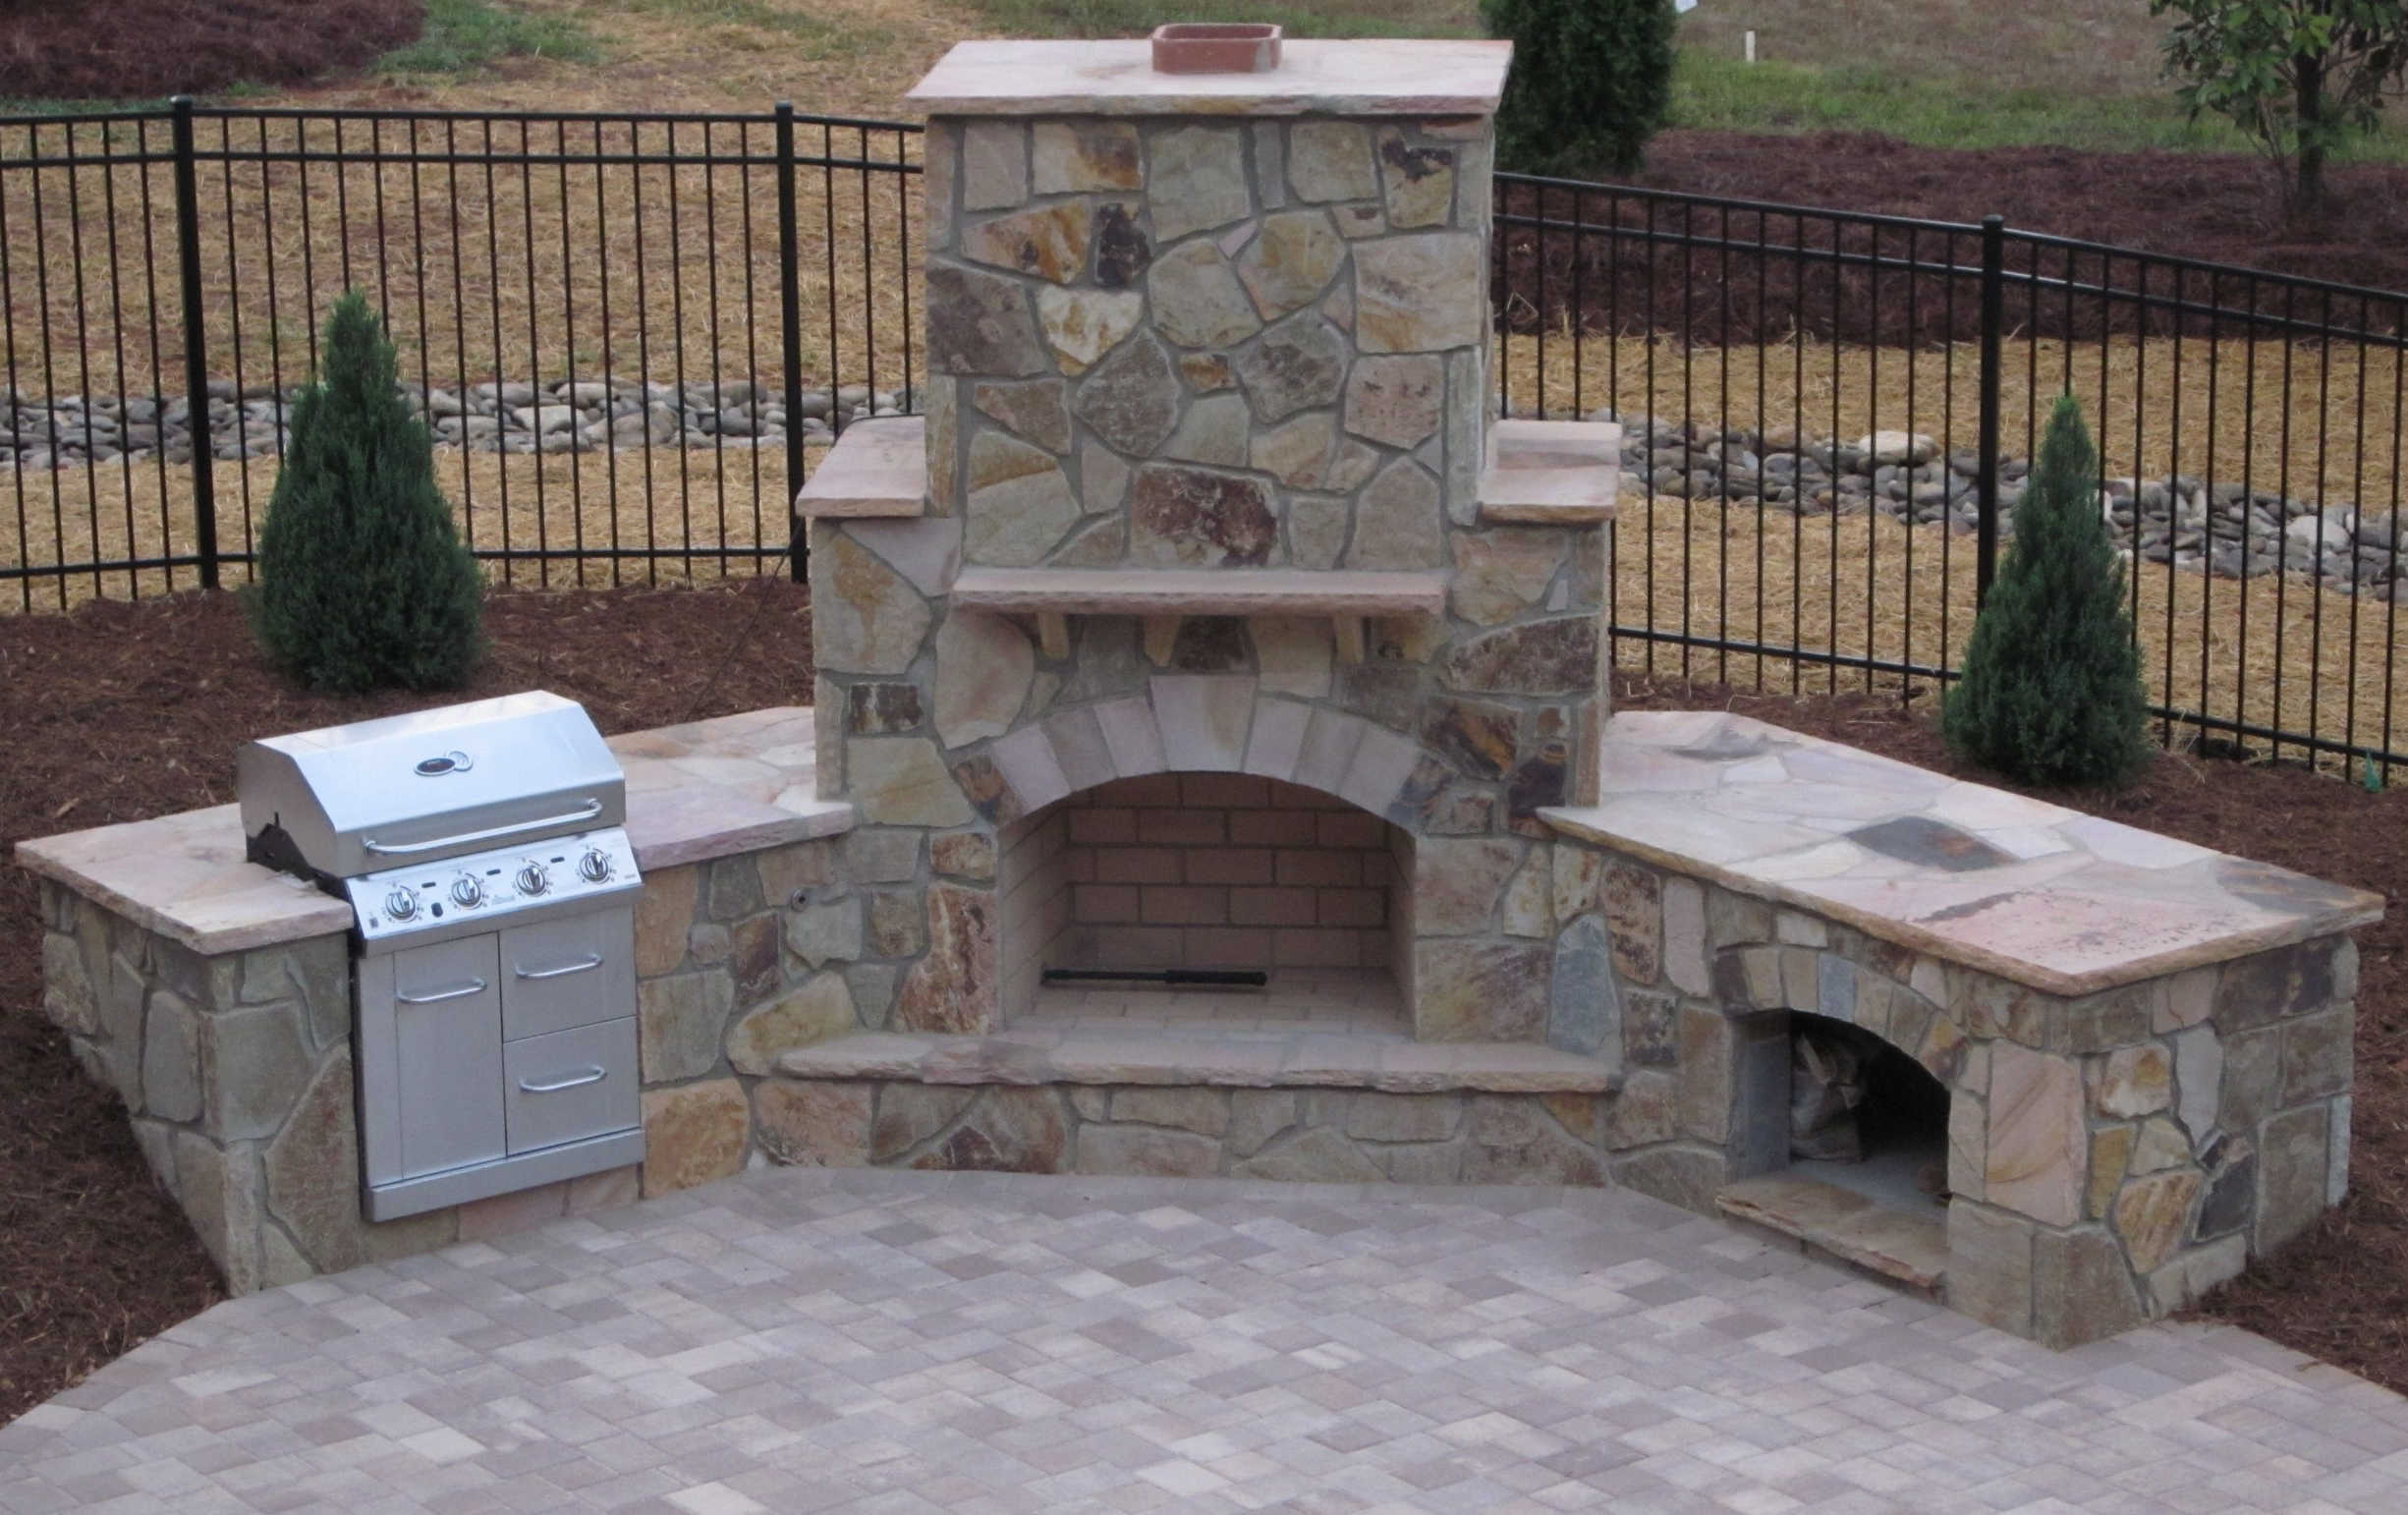 How to build an outdoor fireplace step by step guide Granite a frame plans